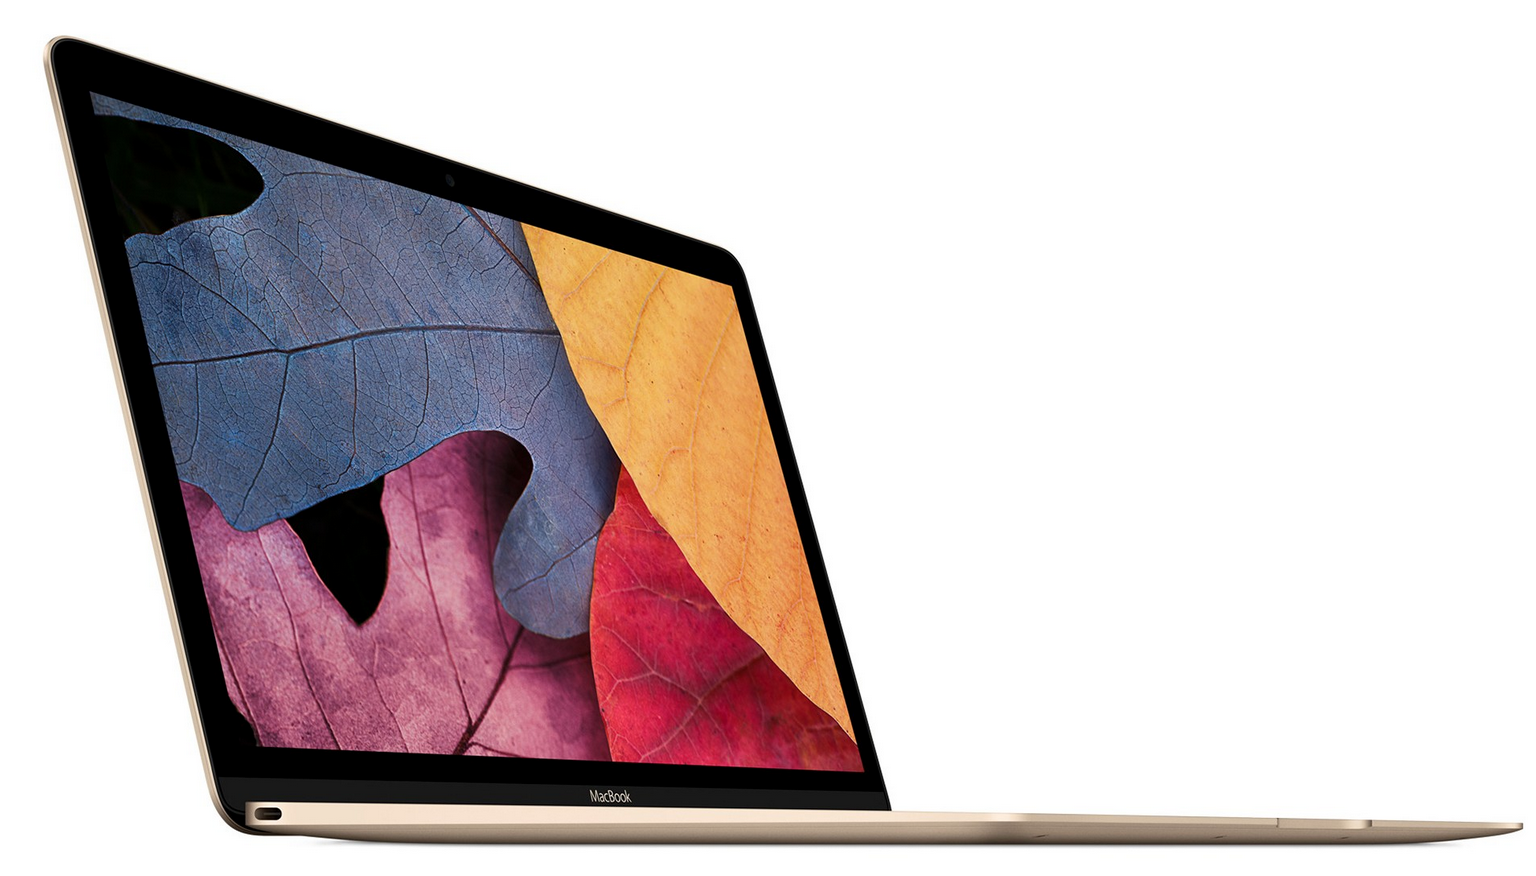 MacBook (2015) Review